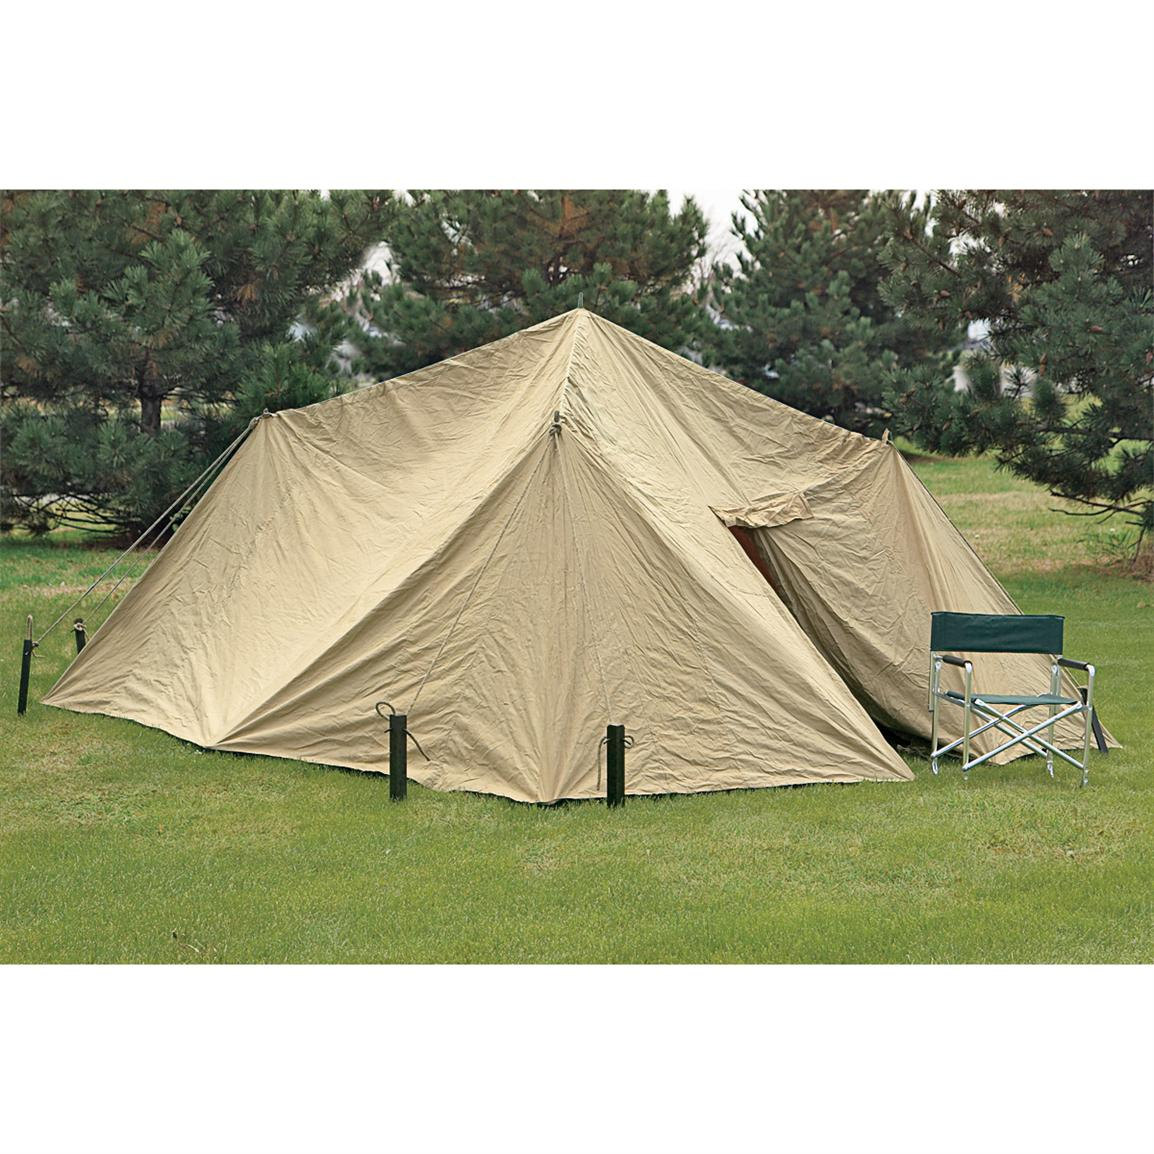 New russian military 4 wall canvas tent 97595 tents for Canvas wall tent reviews